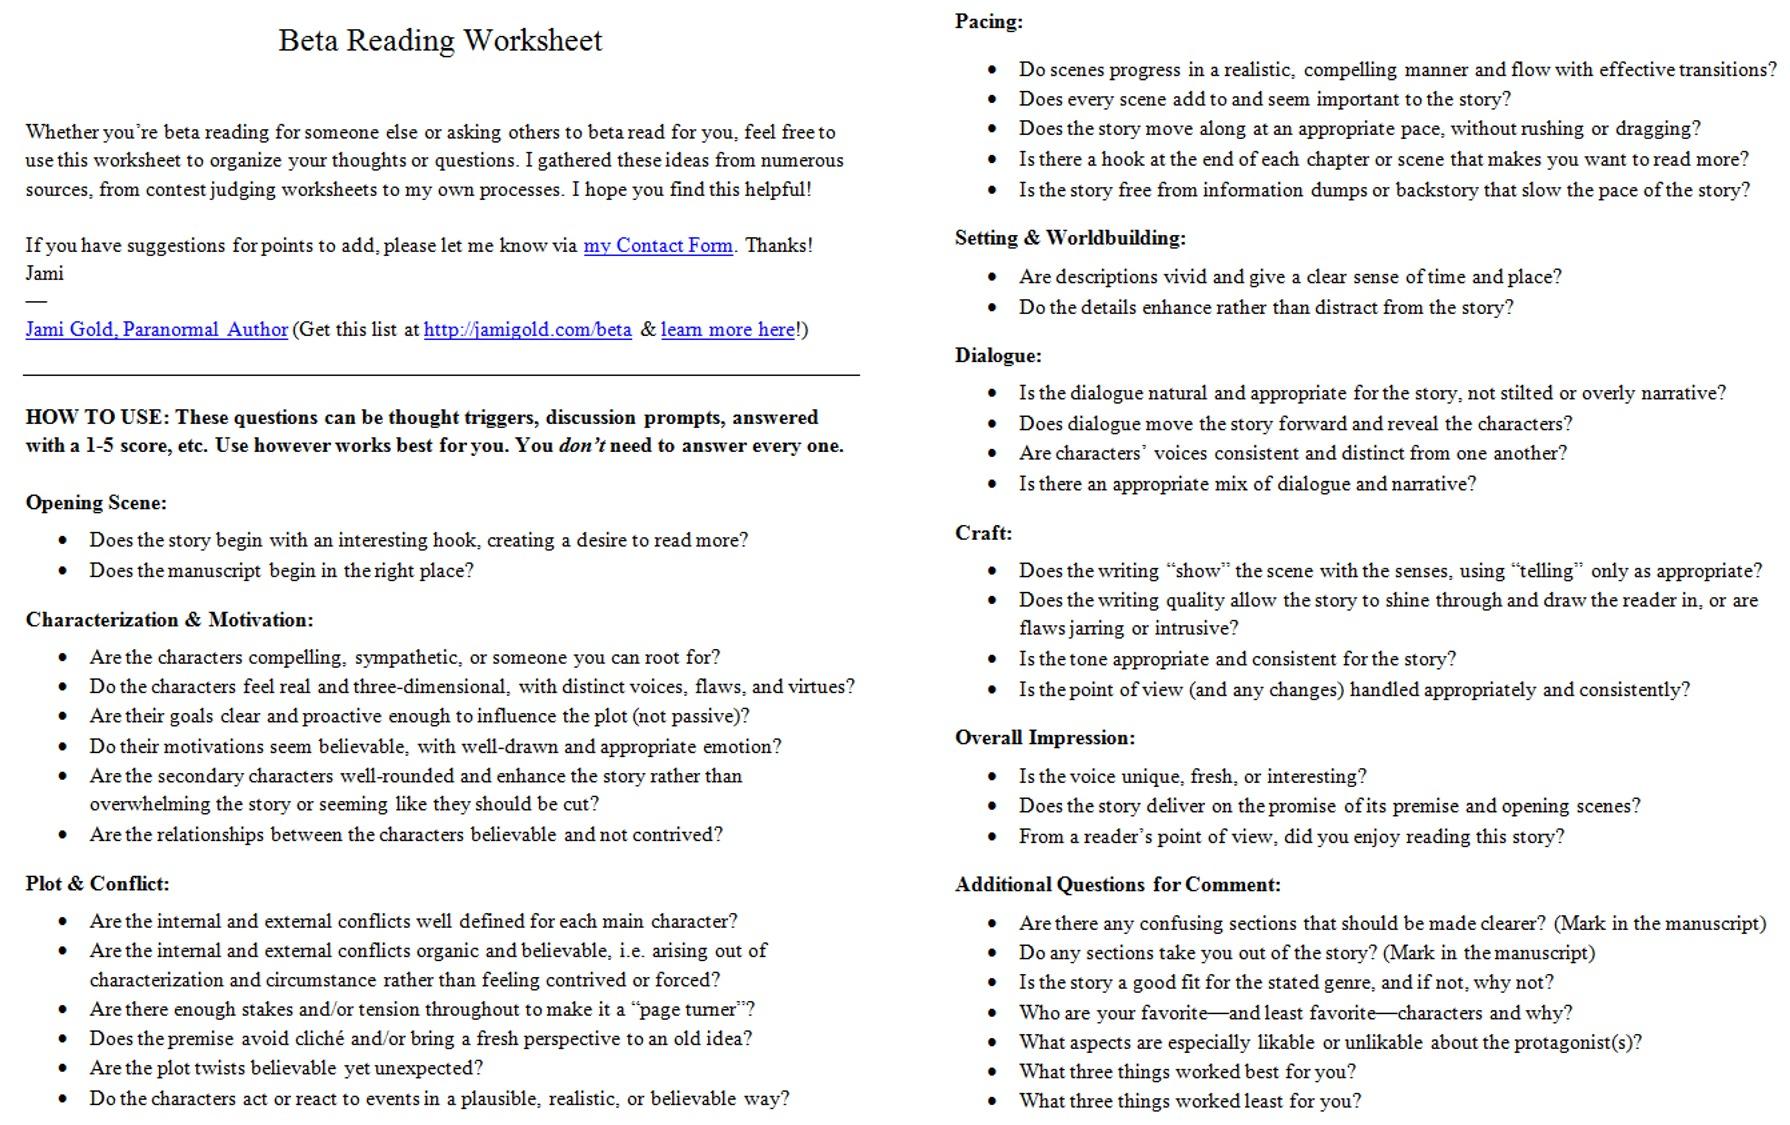 Weirdmailus  Mesmerizing Worksheets For Writers  Jami Gold Paranormal Author With Heavenly Screen Shot Of The Twopage Beta Reading Worksheet With Easy On The Eye Active Voice And Passive Voice Worksheets Also Worksheets On Digraphs In Addition Oi Oy Phonics Worksheets And Worksheets On Adverbs For Grade  As Well As Number Bonds To Ten Worksheet Additionally Law Of Motion Worksheet From Jamigoldcom With Weirdmailus  Heavenly Worksheets For Writers  Jami Gold Paranormal Author With Easy On The Eye Screen Shot Of The Twopage Beta Reading Worksheet And Mesmerizing Active Voice And Passive Voice Worksheets Also Worksheets On Digraphs In Addition Oi Oy Phonics Worksheets From Jamigoldcom